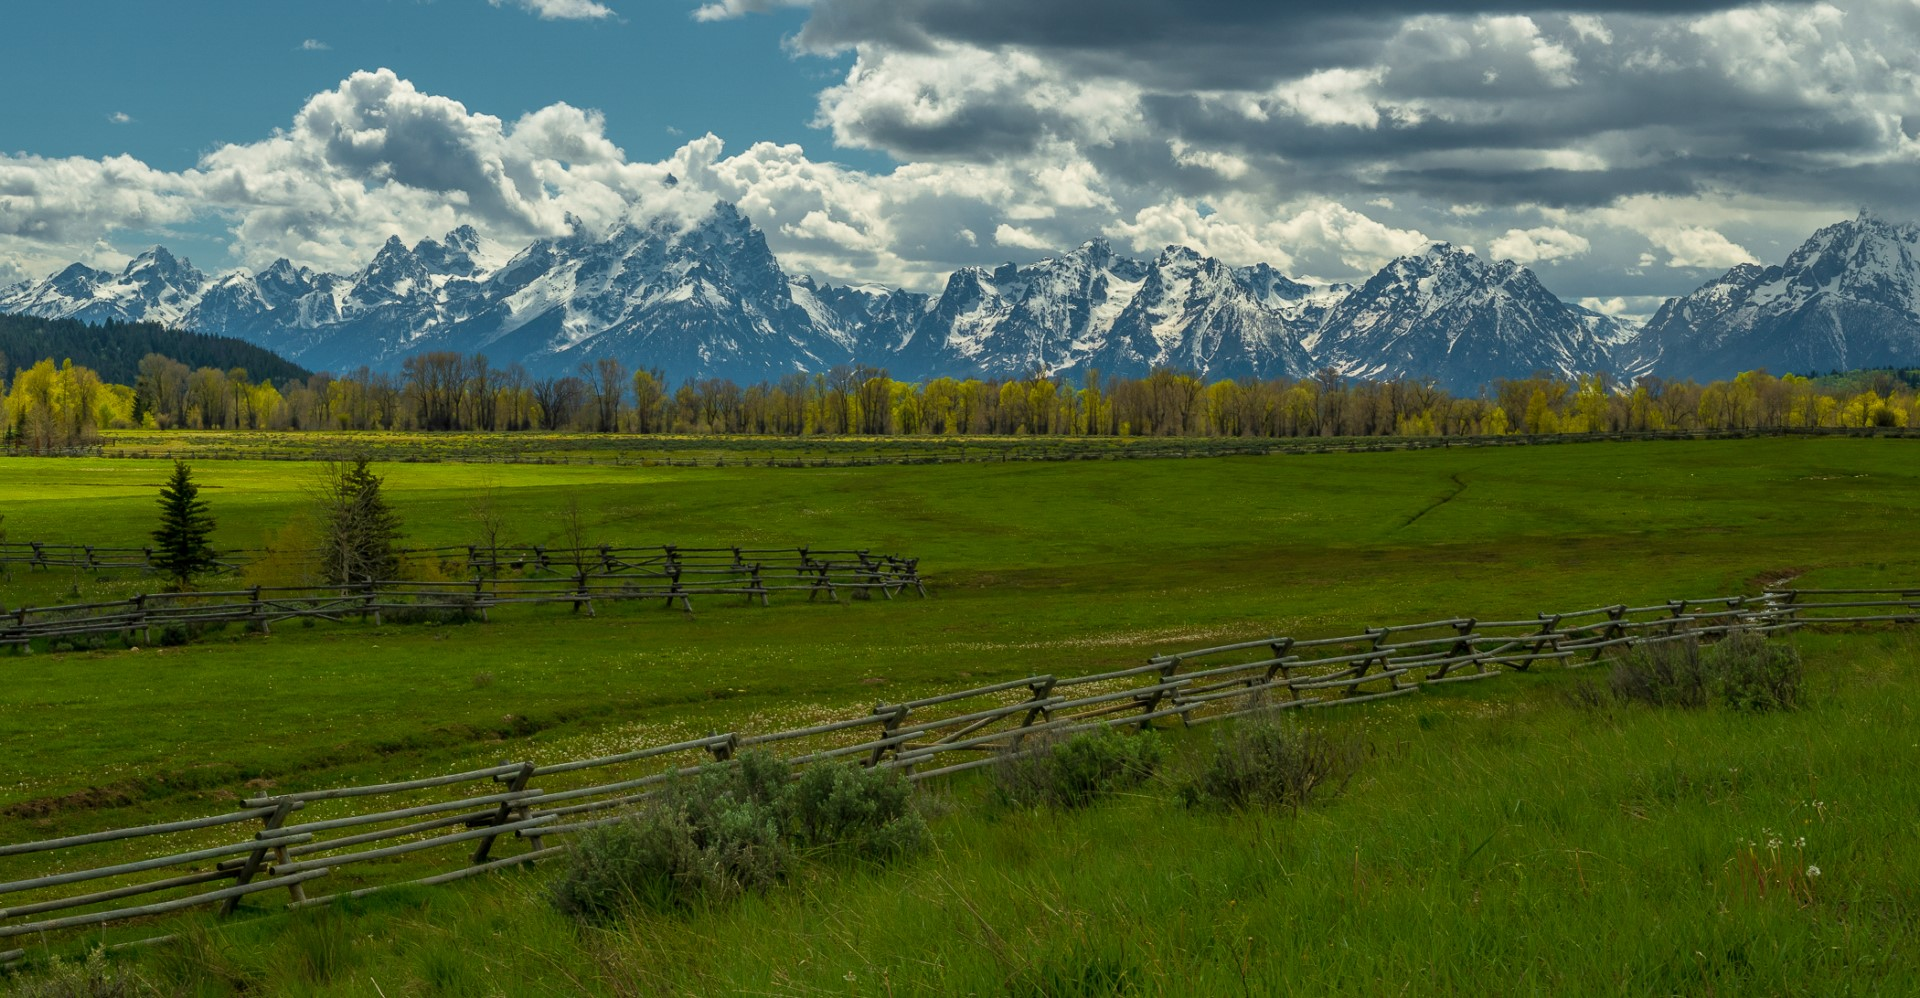 The Wonder and Majesty of the Tetons